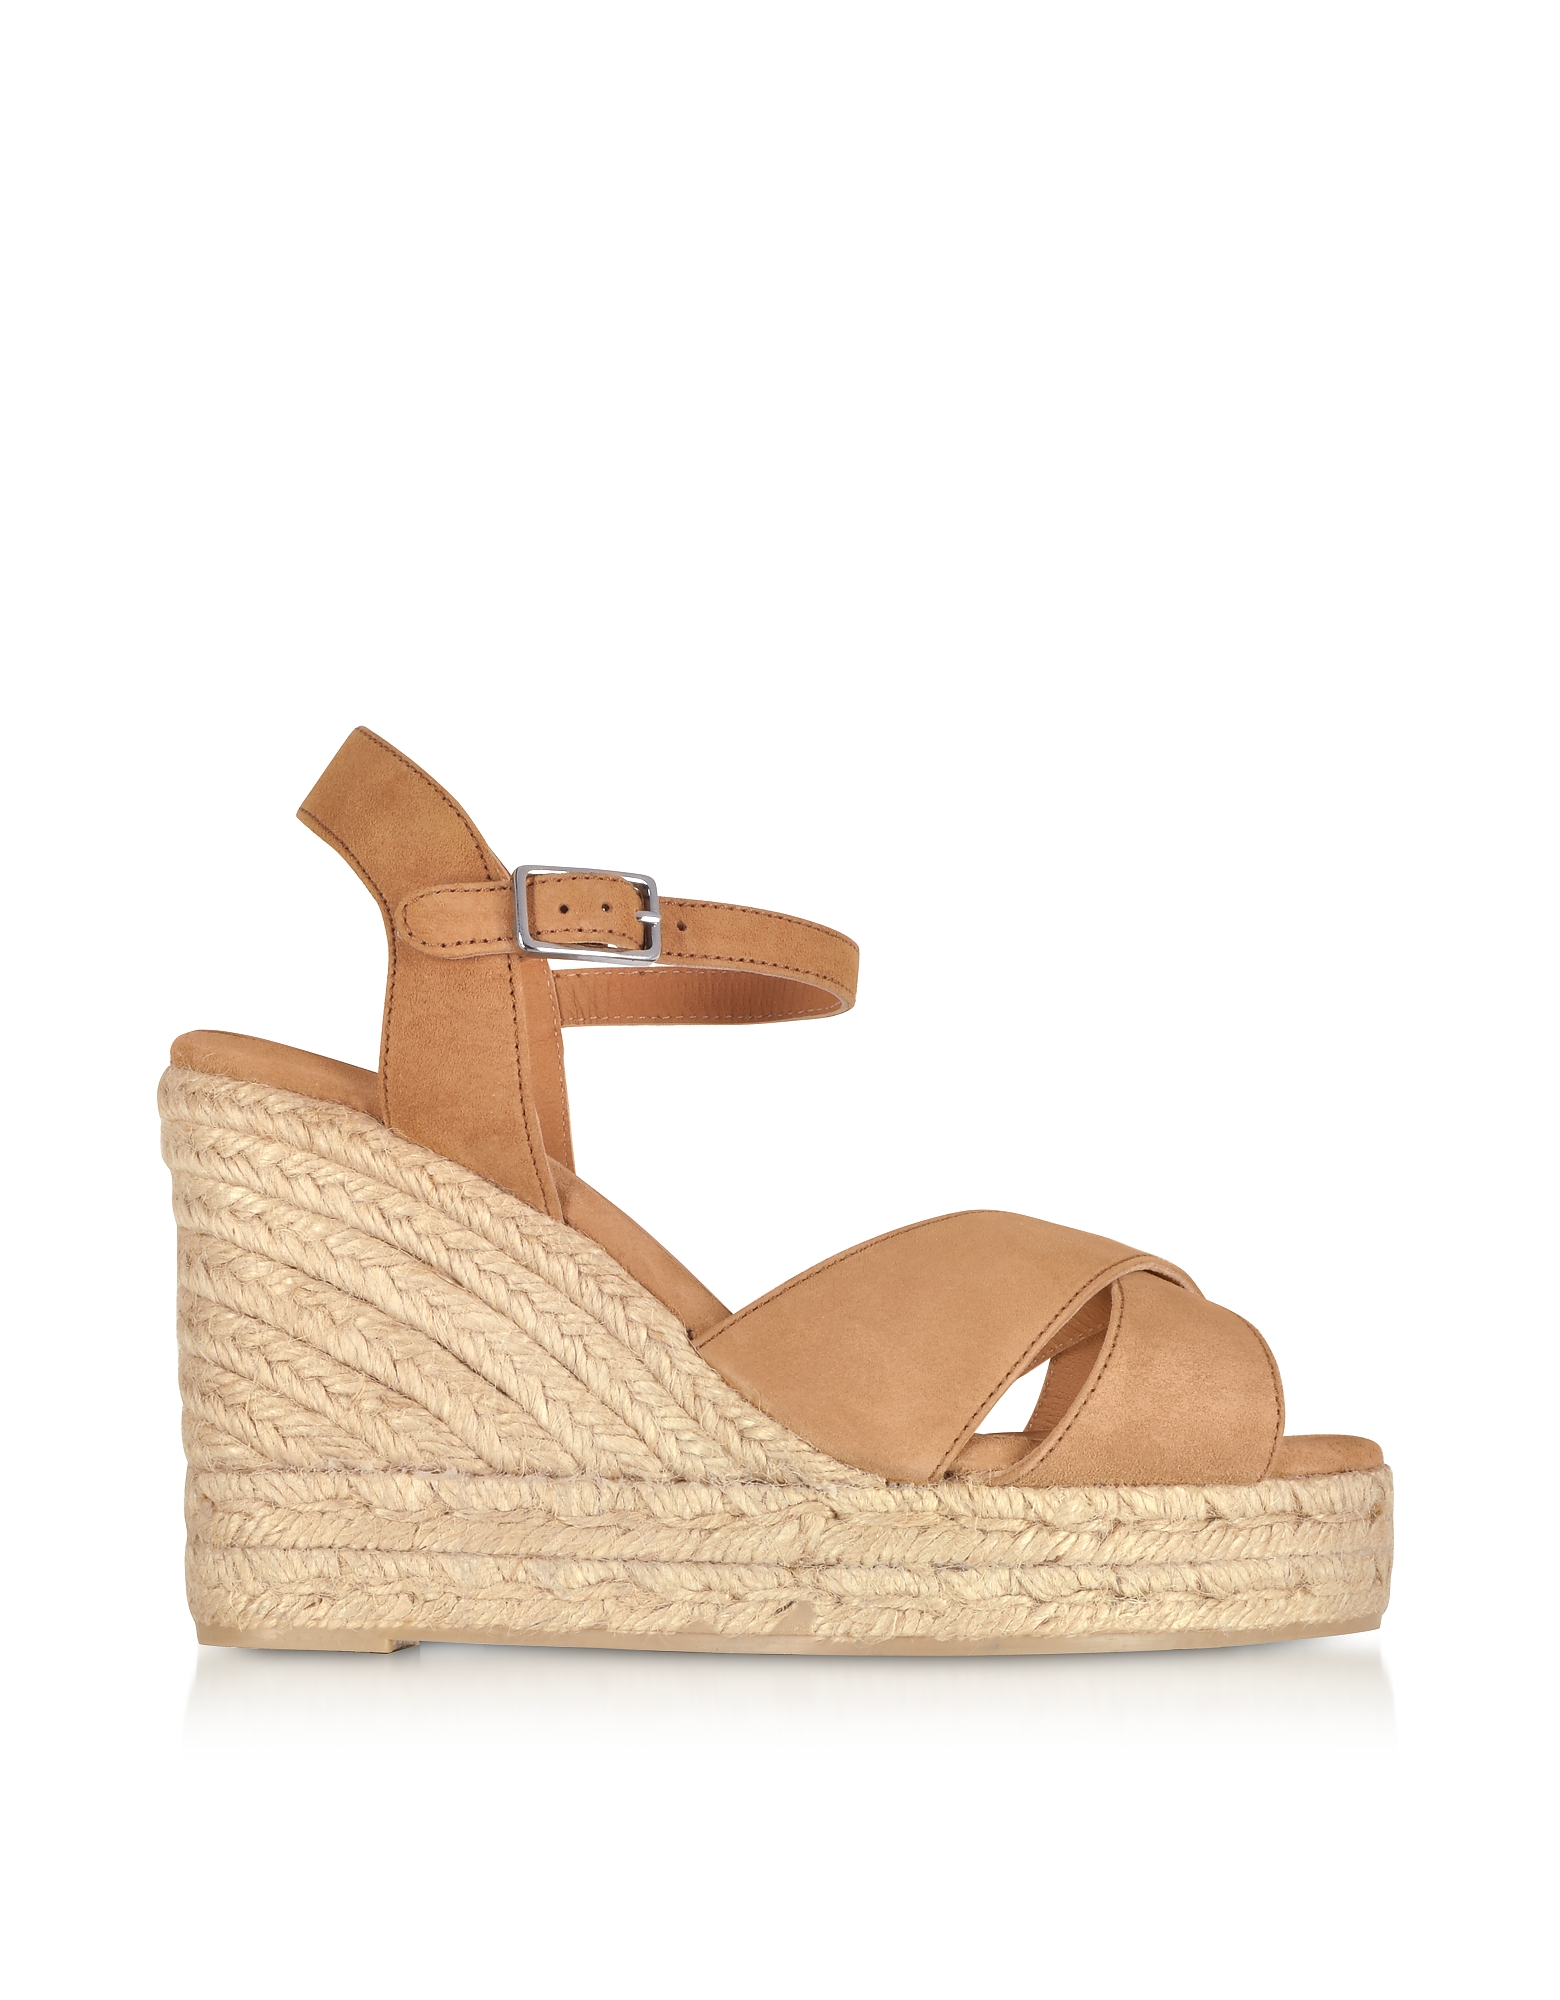 Castaner Blaudell Brown Suede Wedge Sandals